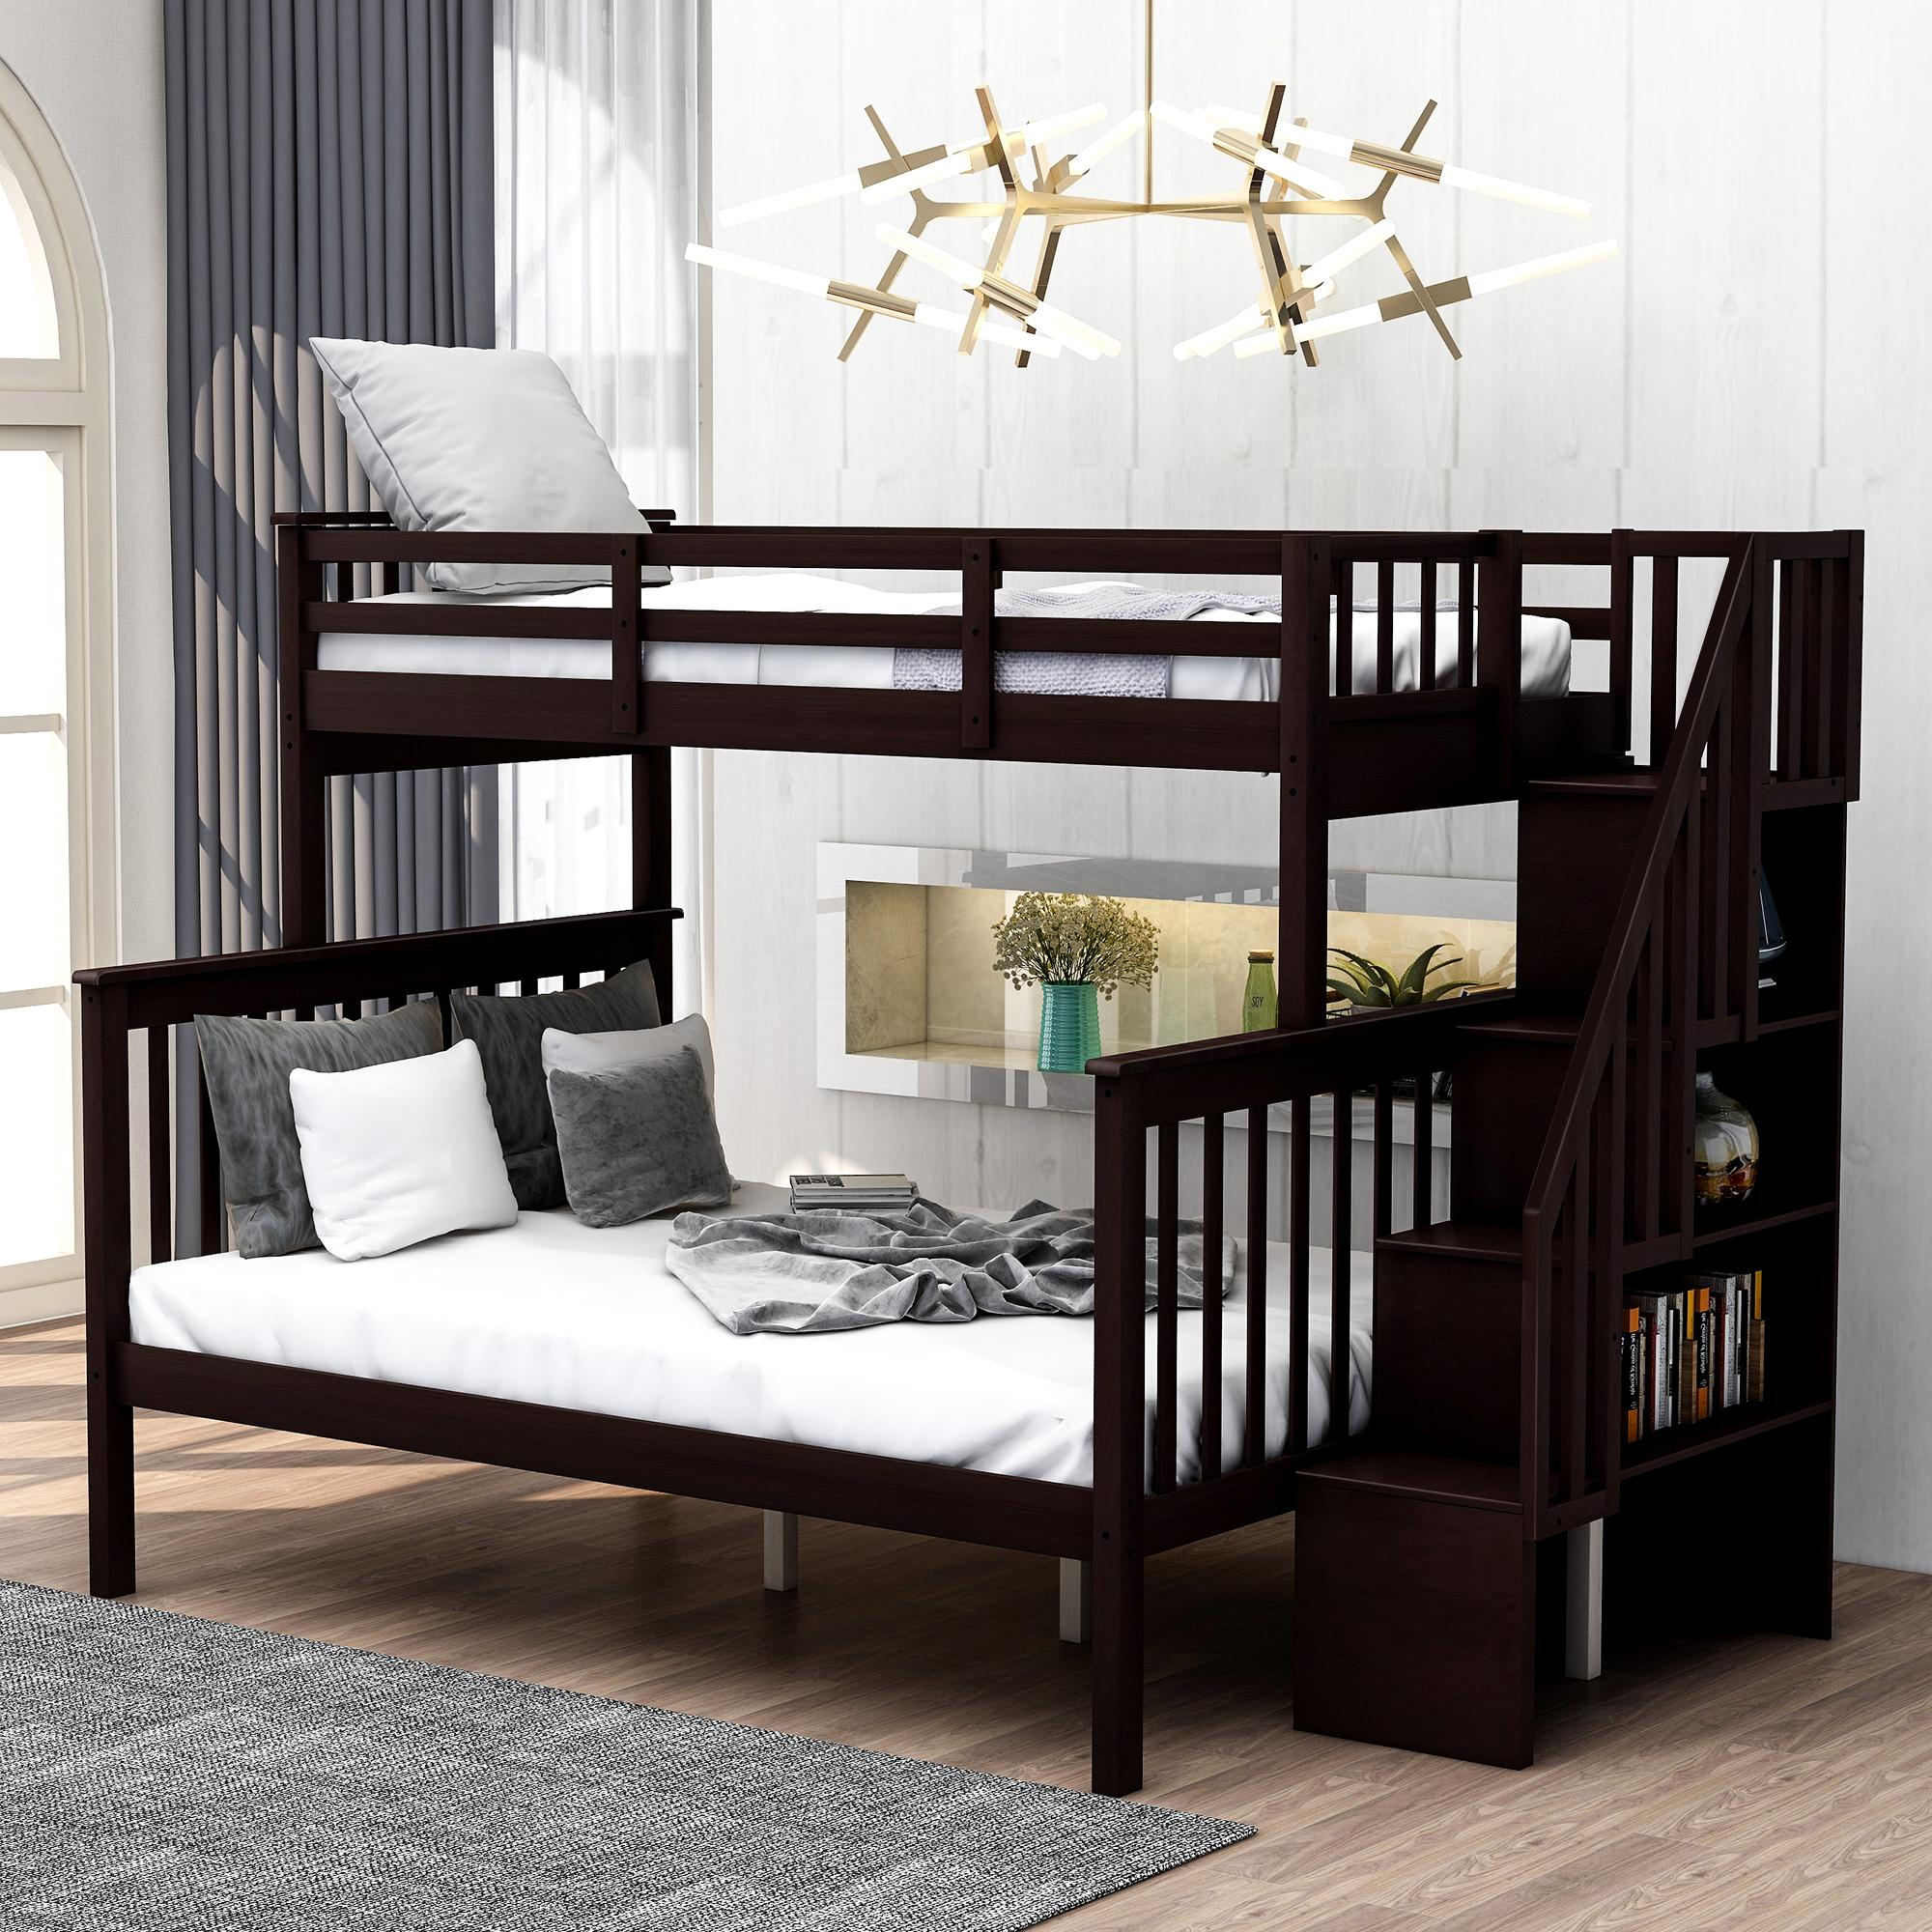 2020 Stairway Twin Over Full Bunk Bed With Storage And Guard Rail For Bedroom Dorm For Kids Adults Espresso Color Lp000019aap From Enjoyweddinglife 728 87 Dhgate Com